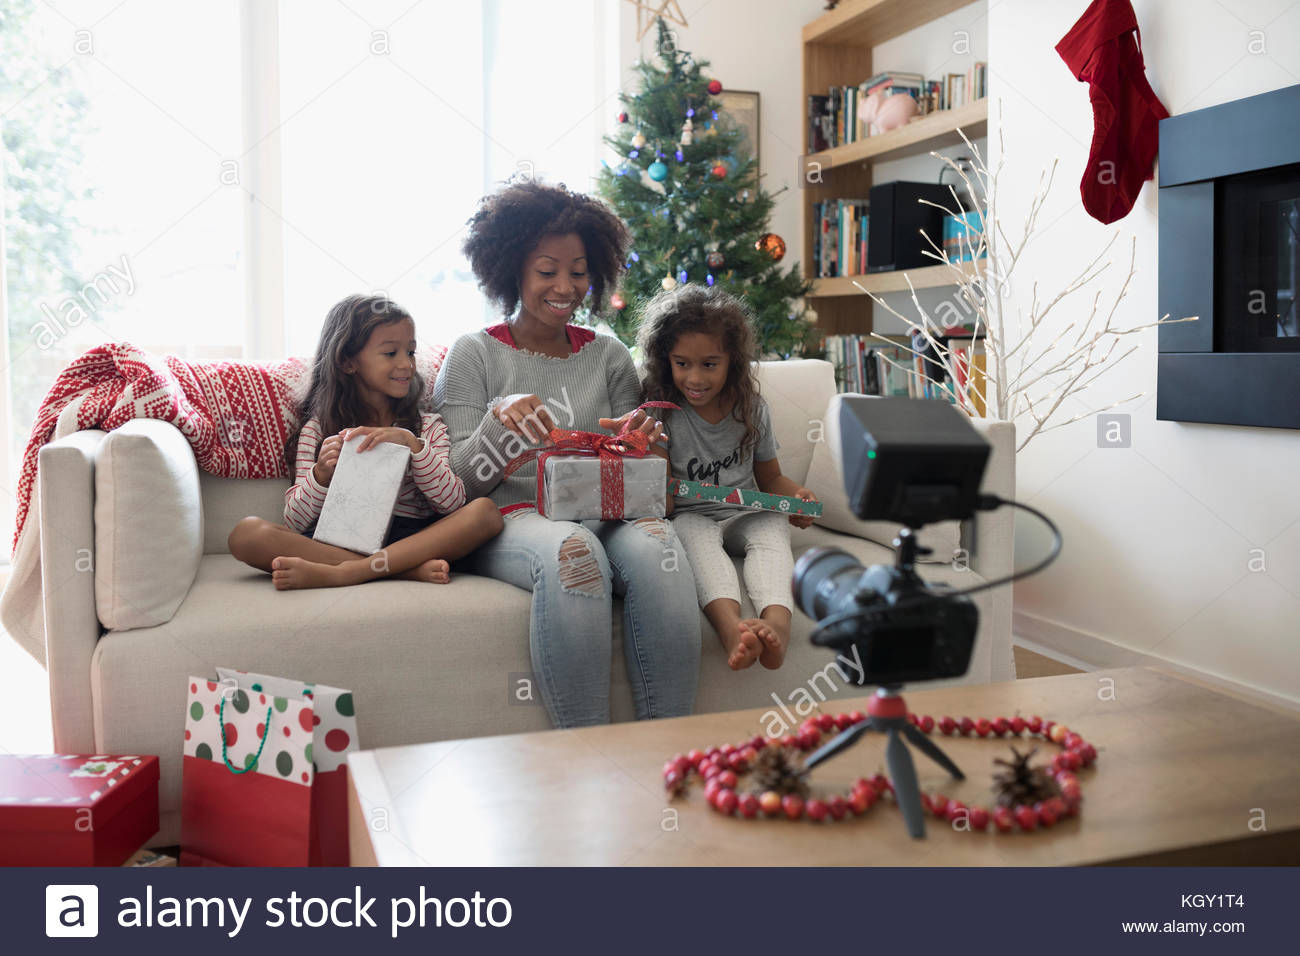 Mother and daughters opening Christmas gifts for video camera in living room - Stock Image